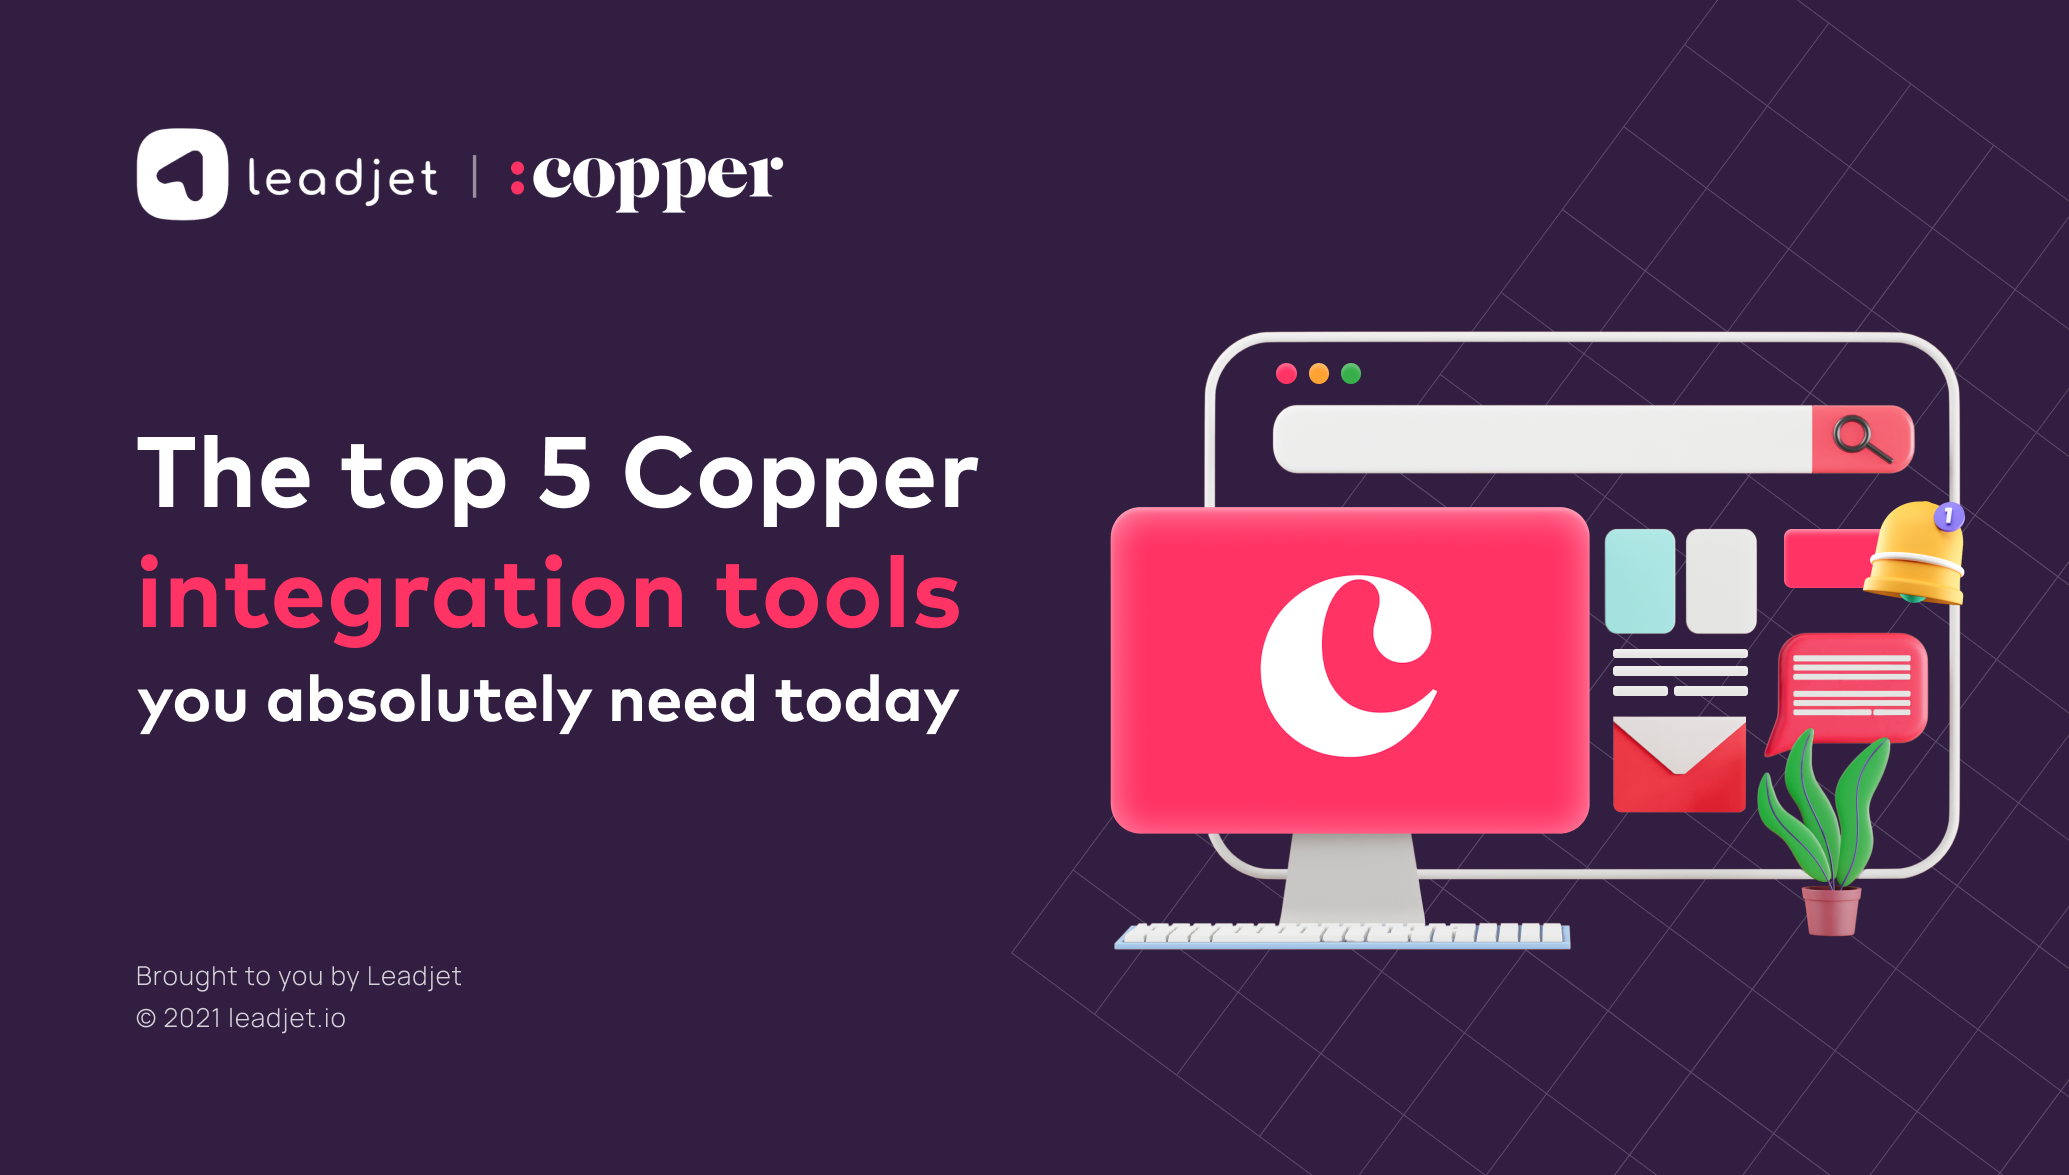 The top 5 Copper integration tools you absolutely need today